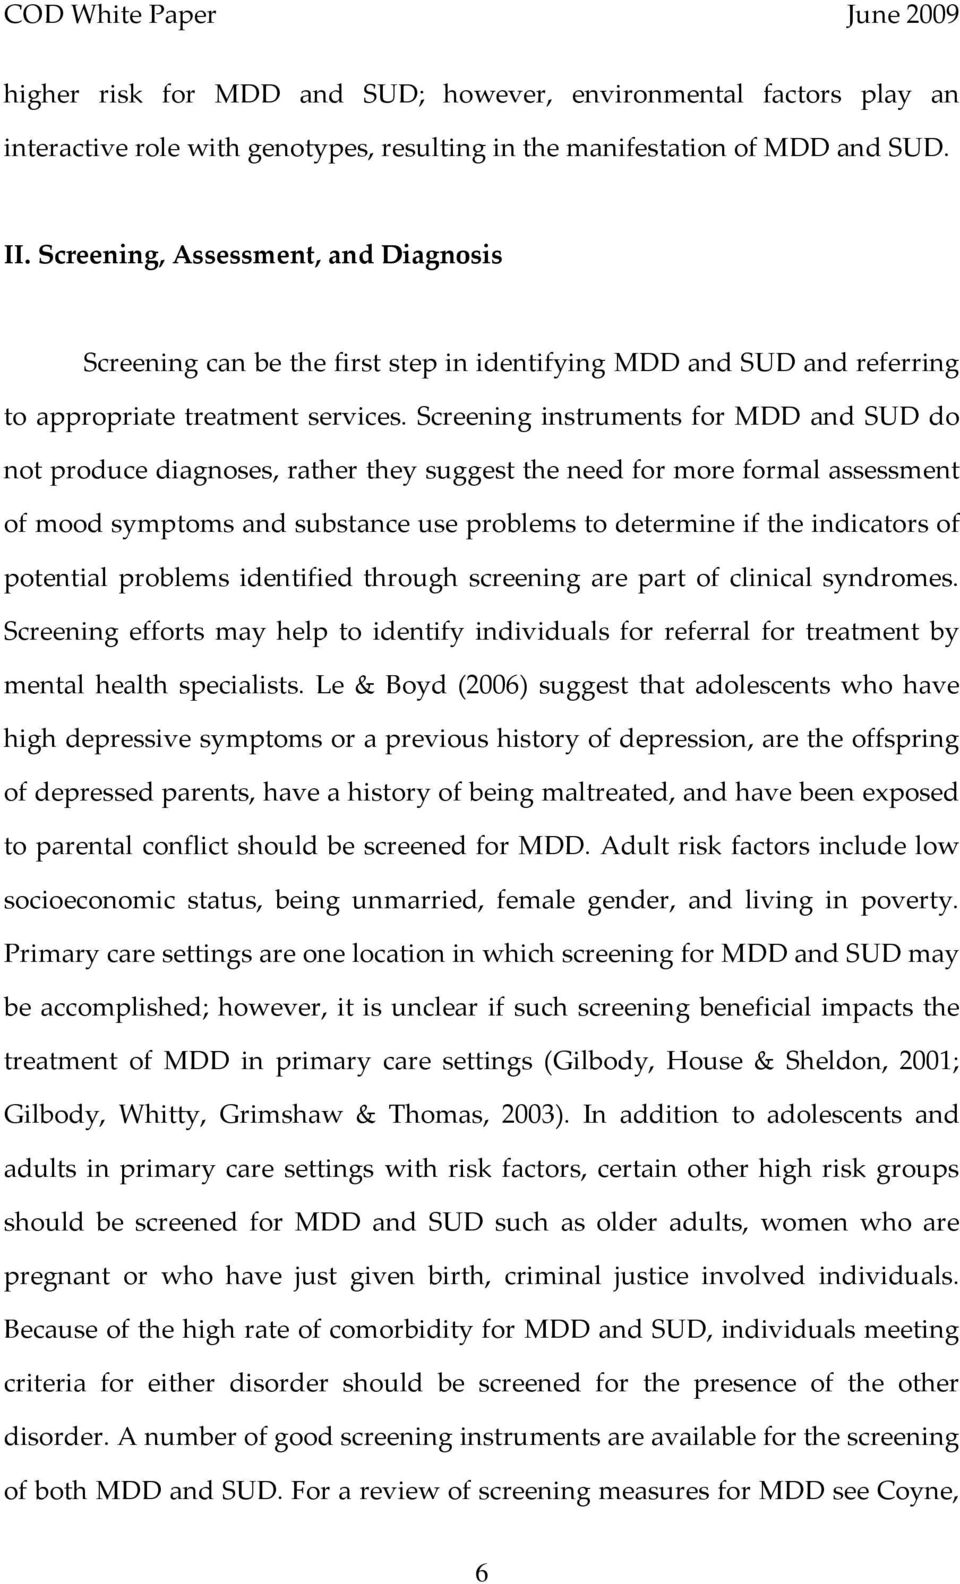 Screening instruments for MDD and SUD do not produce diagnoses, rather they suggest the need for more formal assessment of mood symptoms and substance use problems to determine if the indicators of